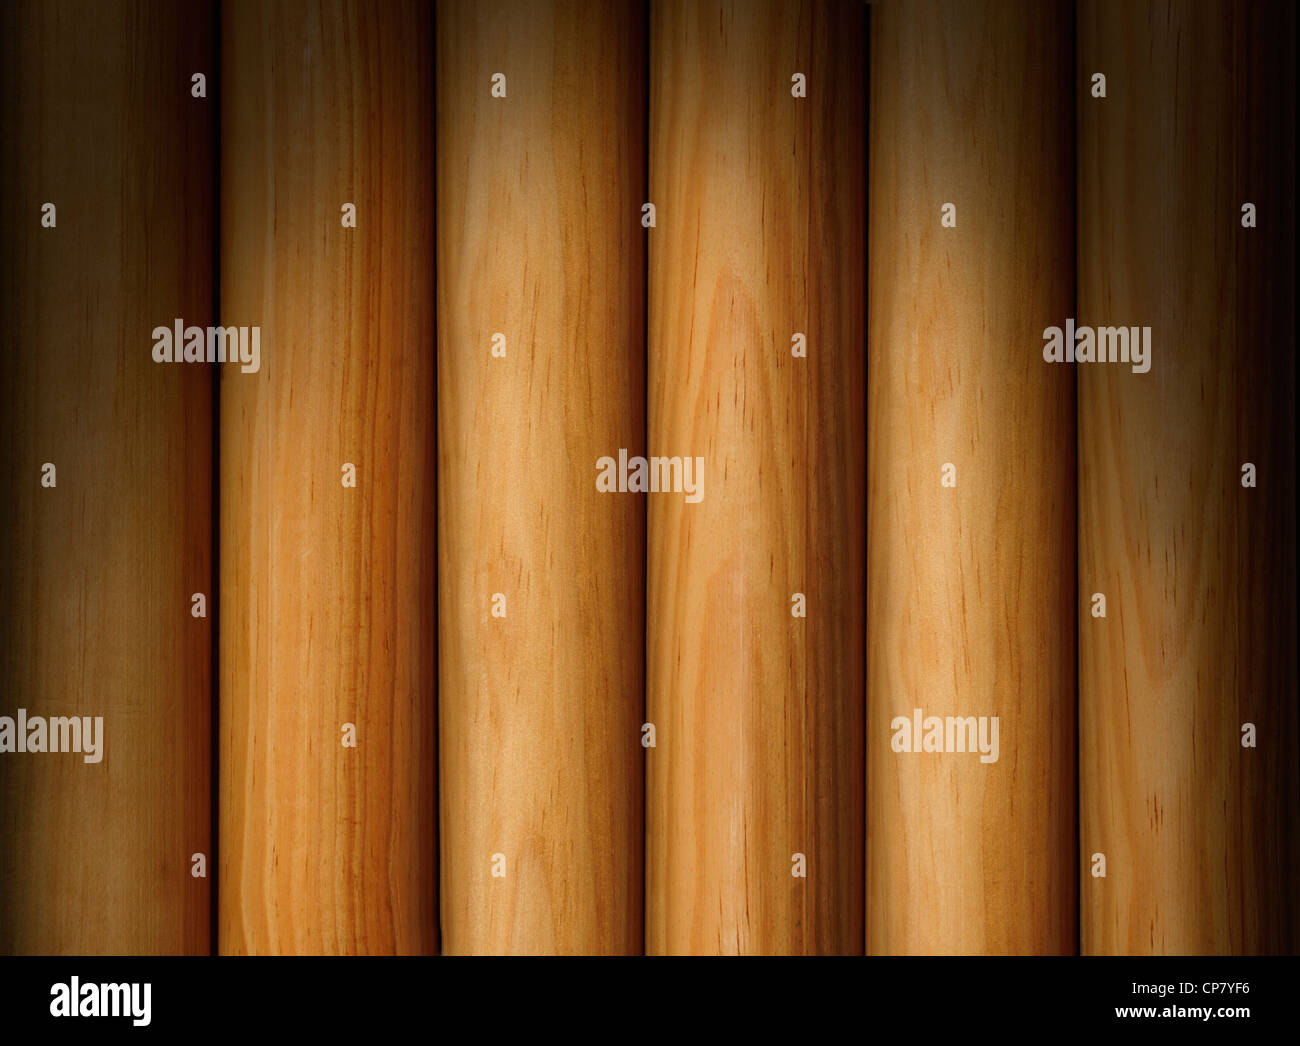 Wooden poles forming a background texture lit dramatically from above - Stock Image